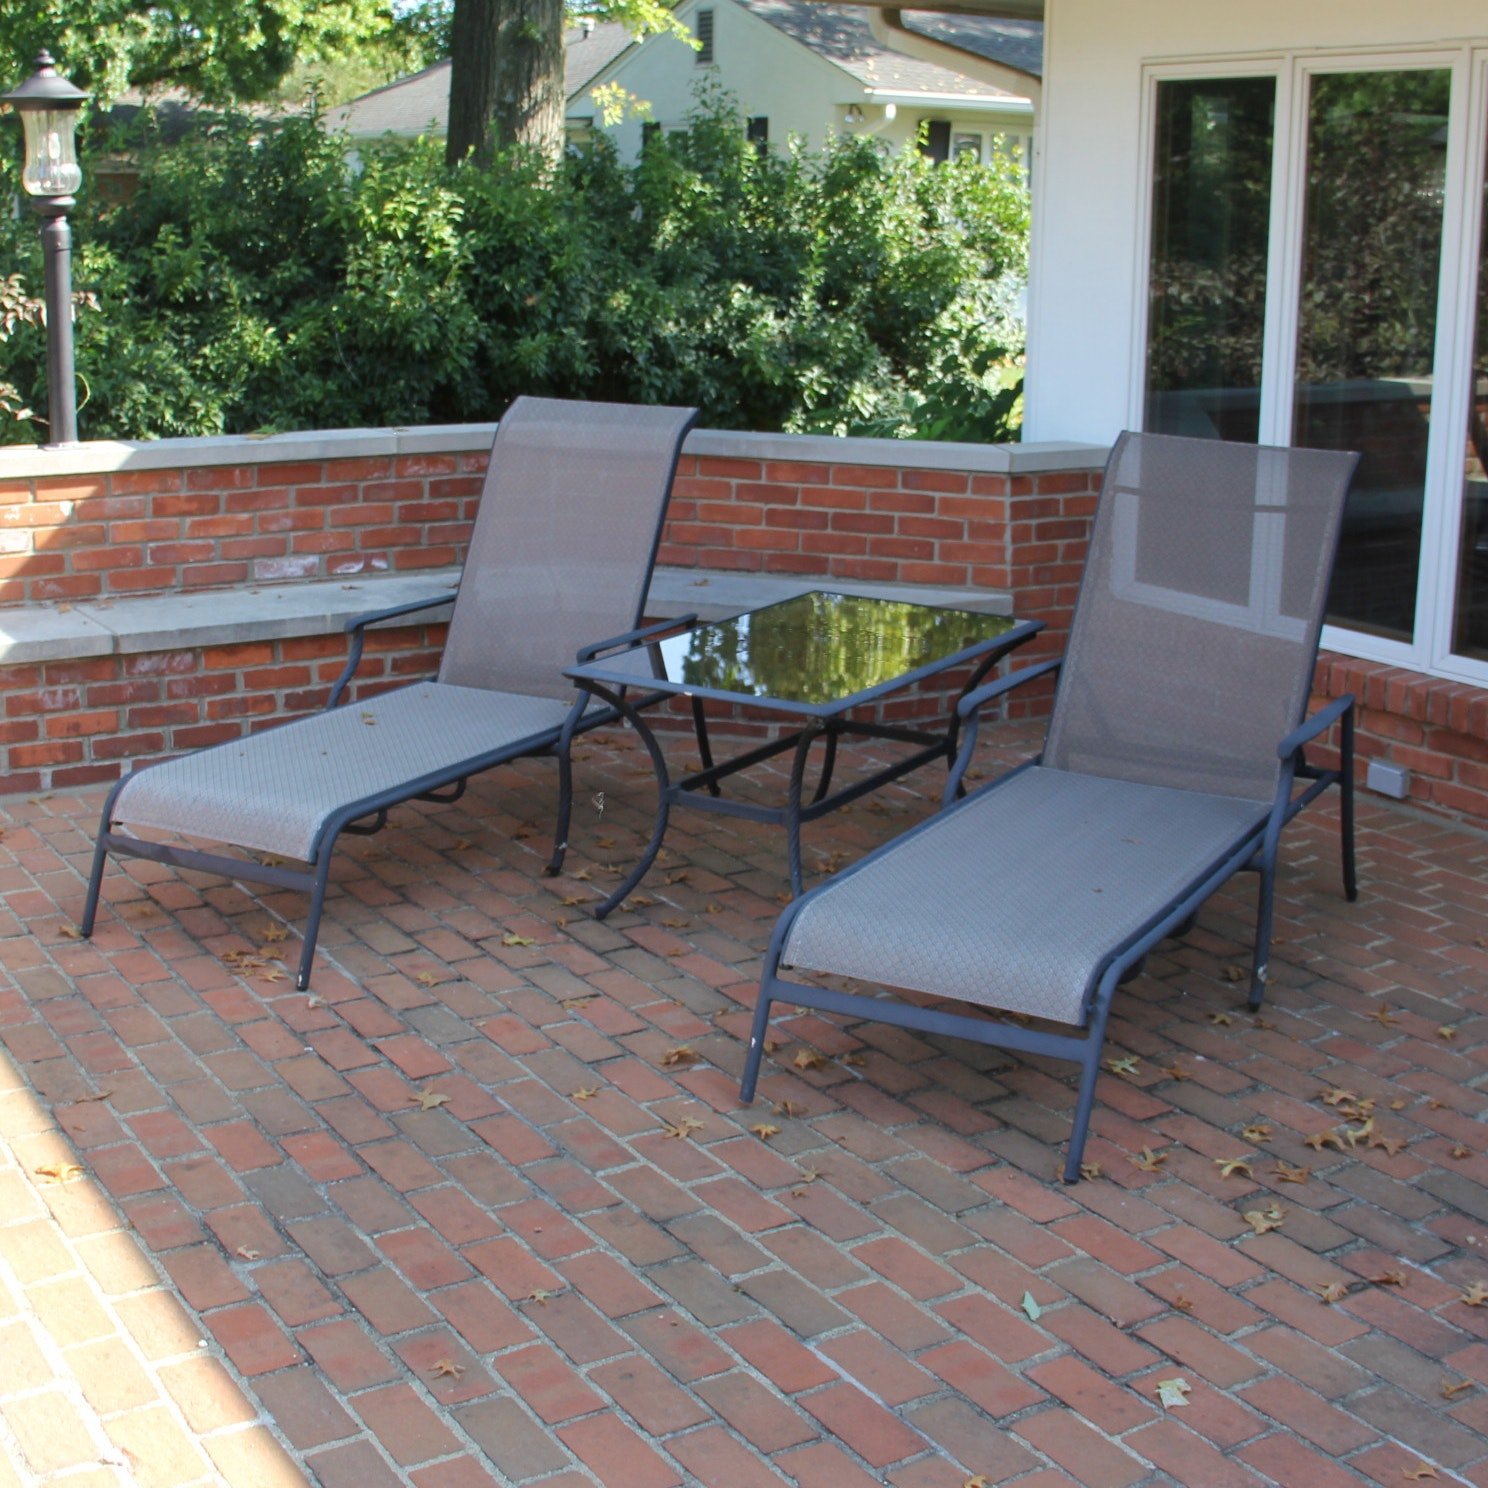 Pair of Chaise Lounge Chairs with Accent Table